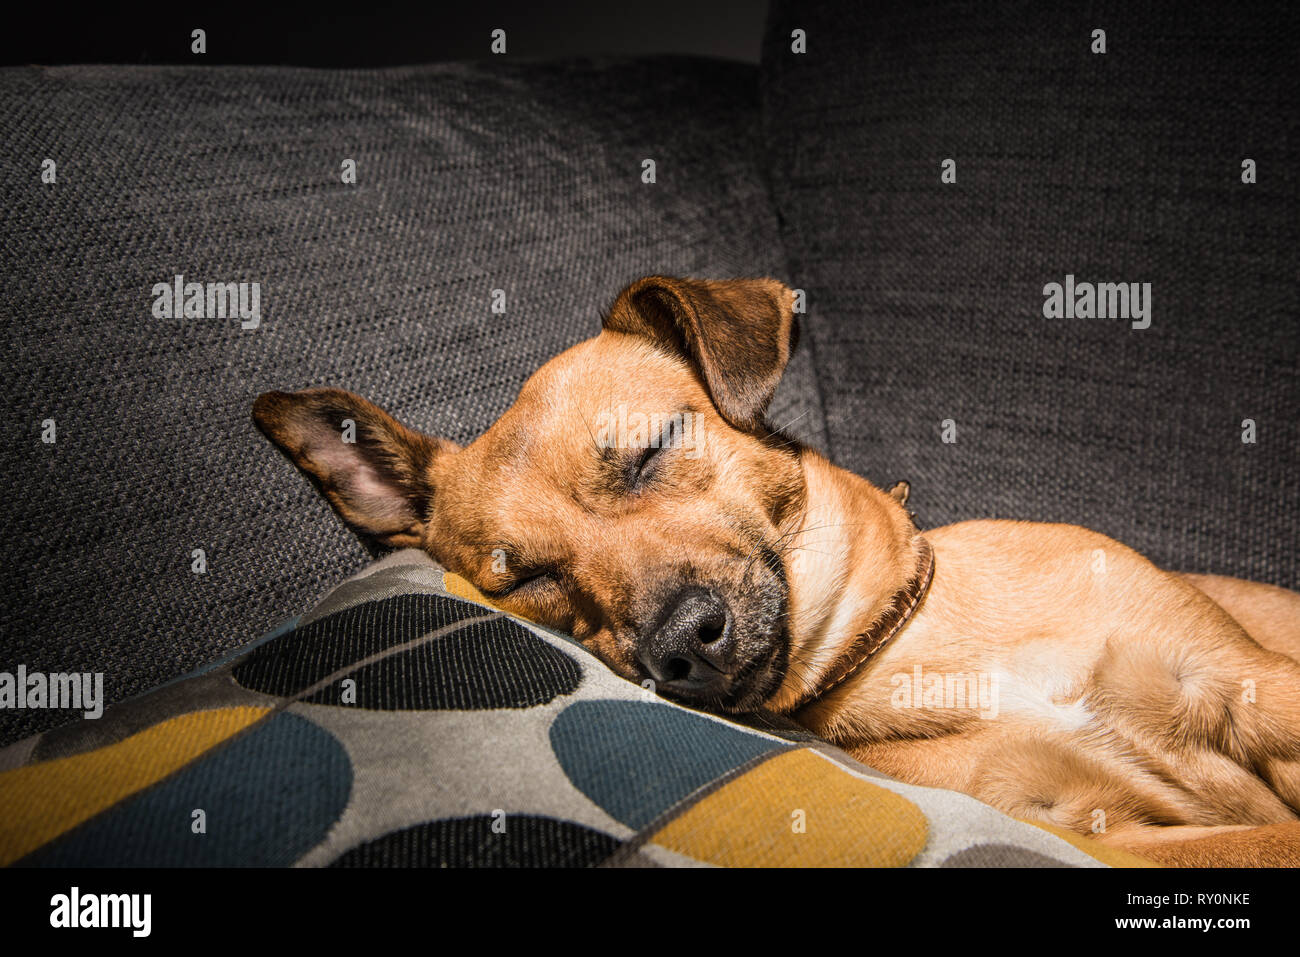 Young brown dog sleeping on a sofa - cute pet photography - rescue dog relaxed in the house - Stock Image